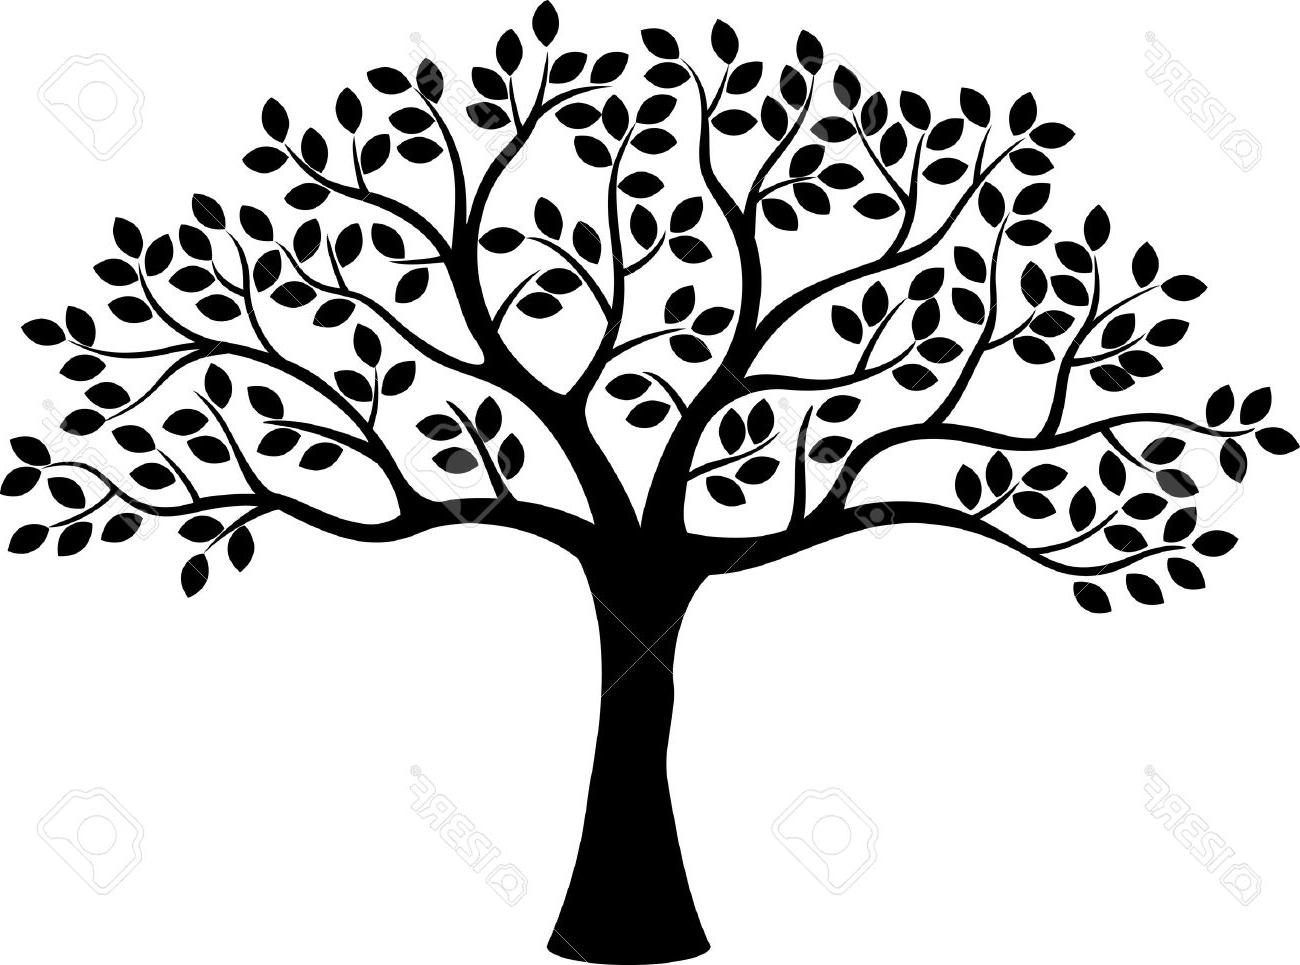 Tree of life silhouette clipart banner Family Tree Clipart Black And White | Free download best ... banner